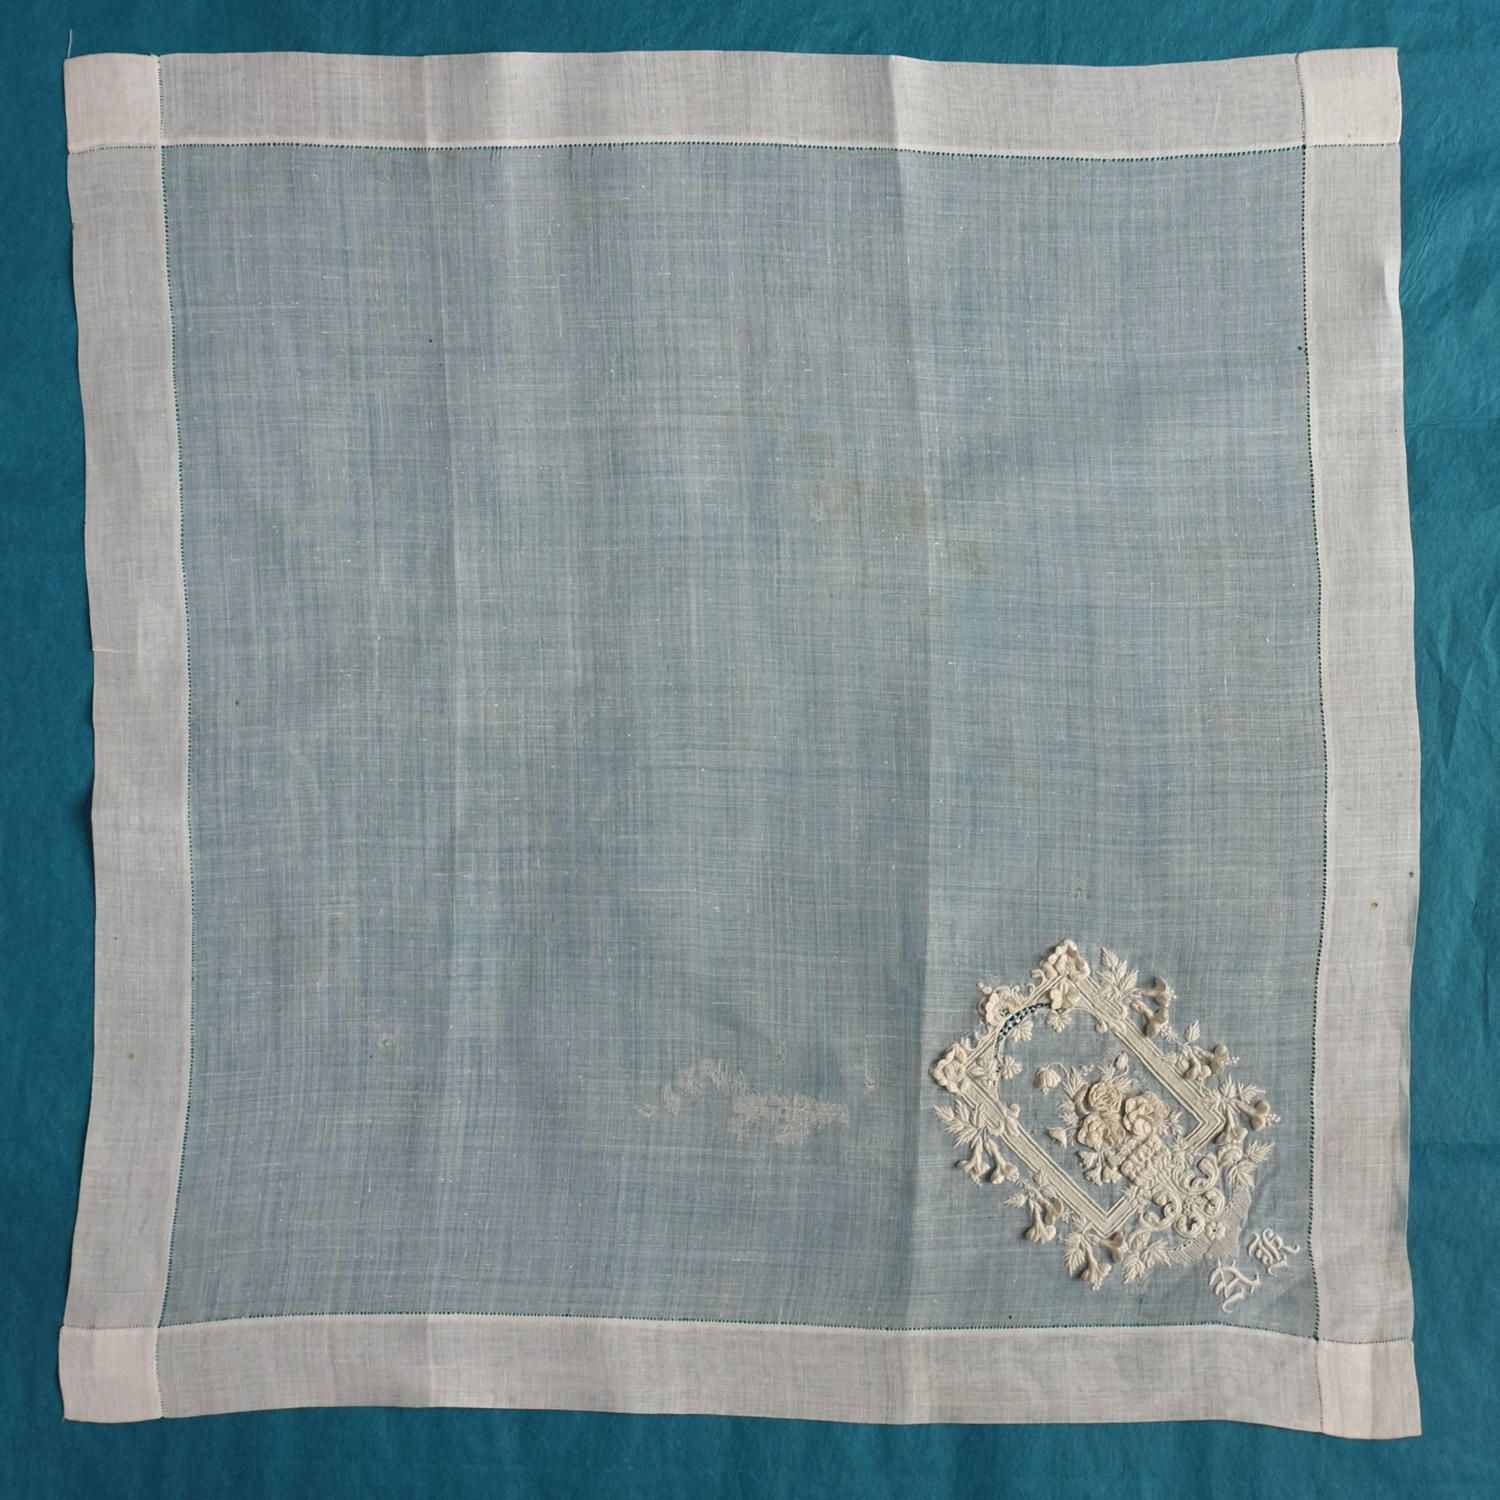 Late 19th Century Swiss Embroidered Raised Whitework Handkerchief